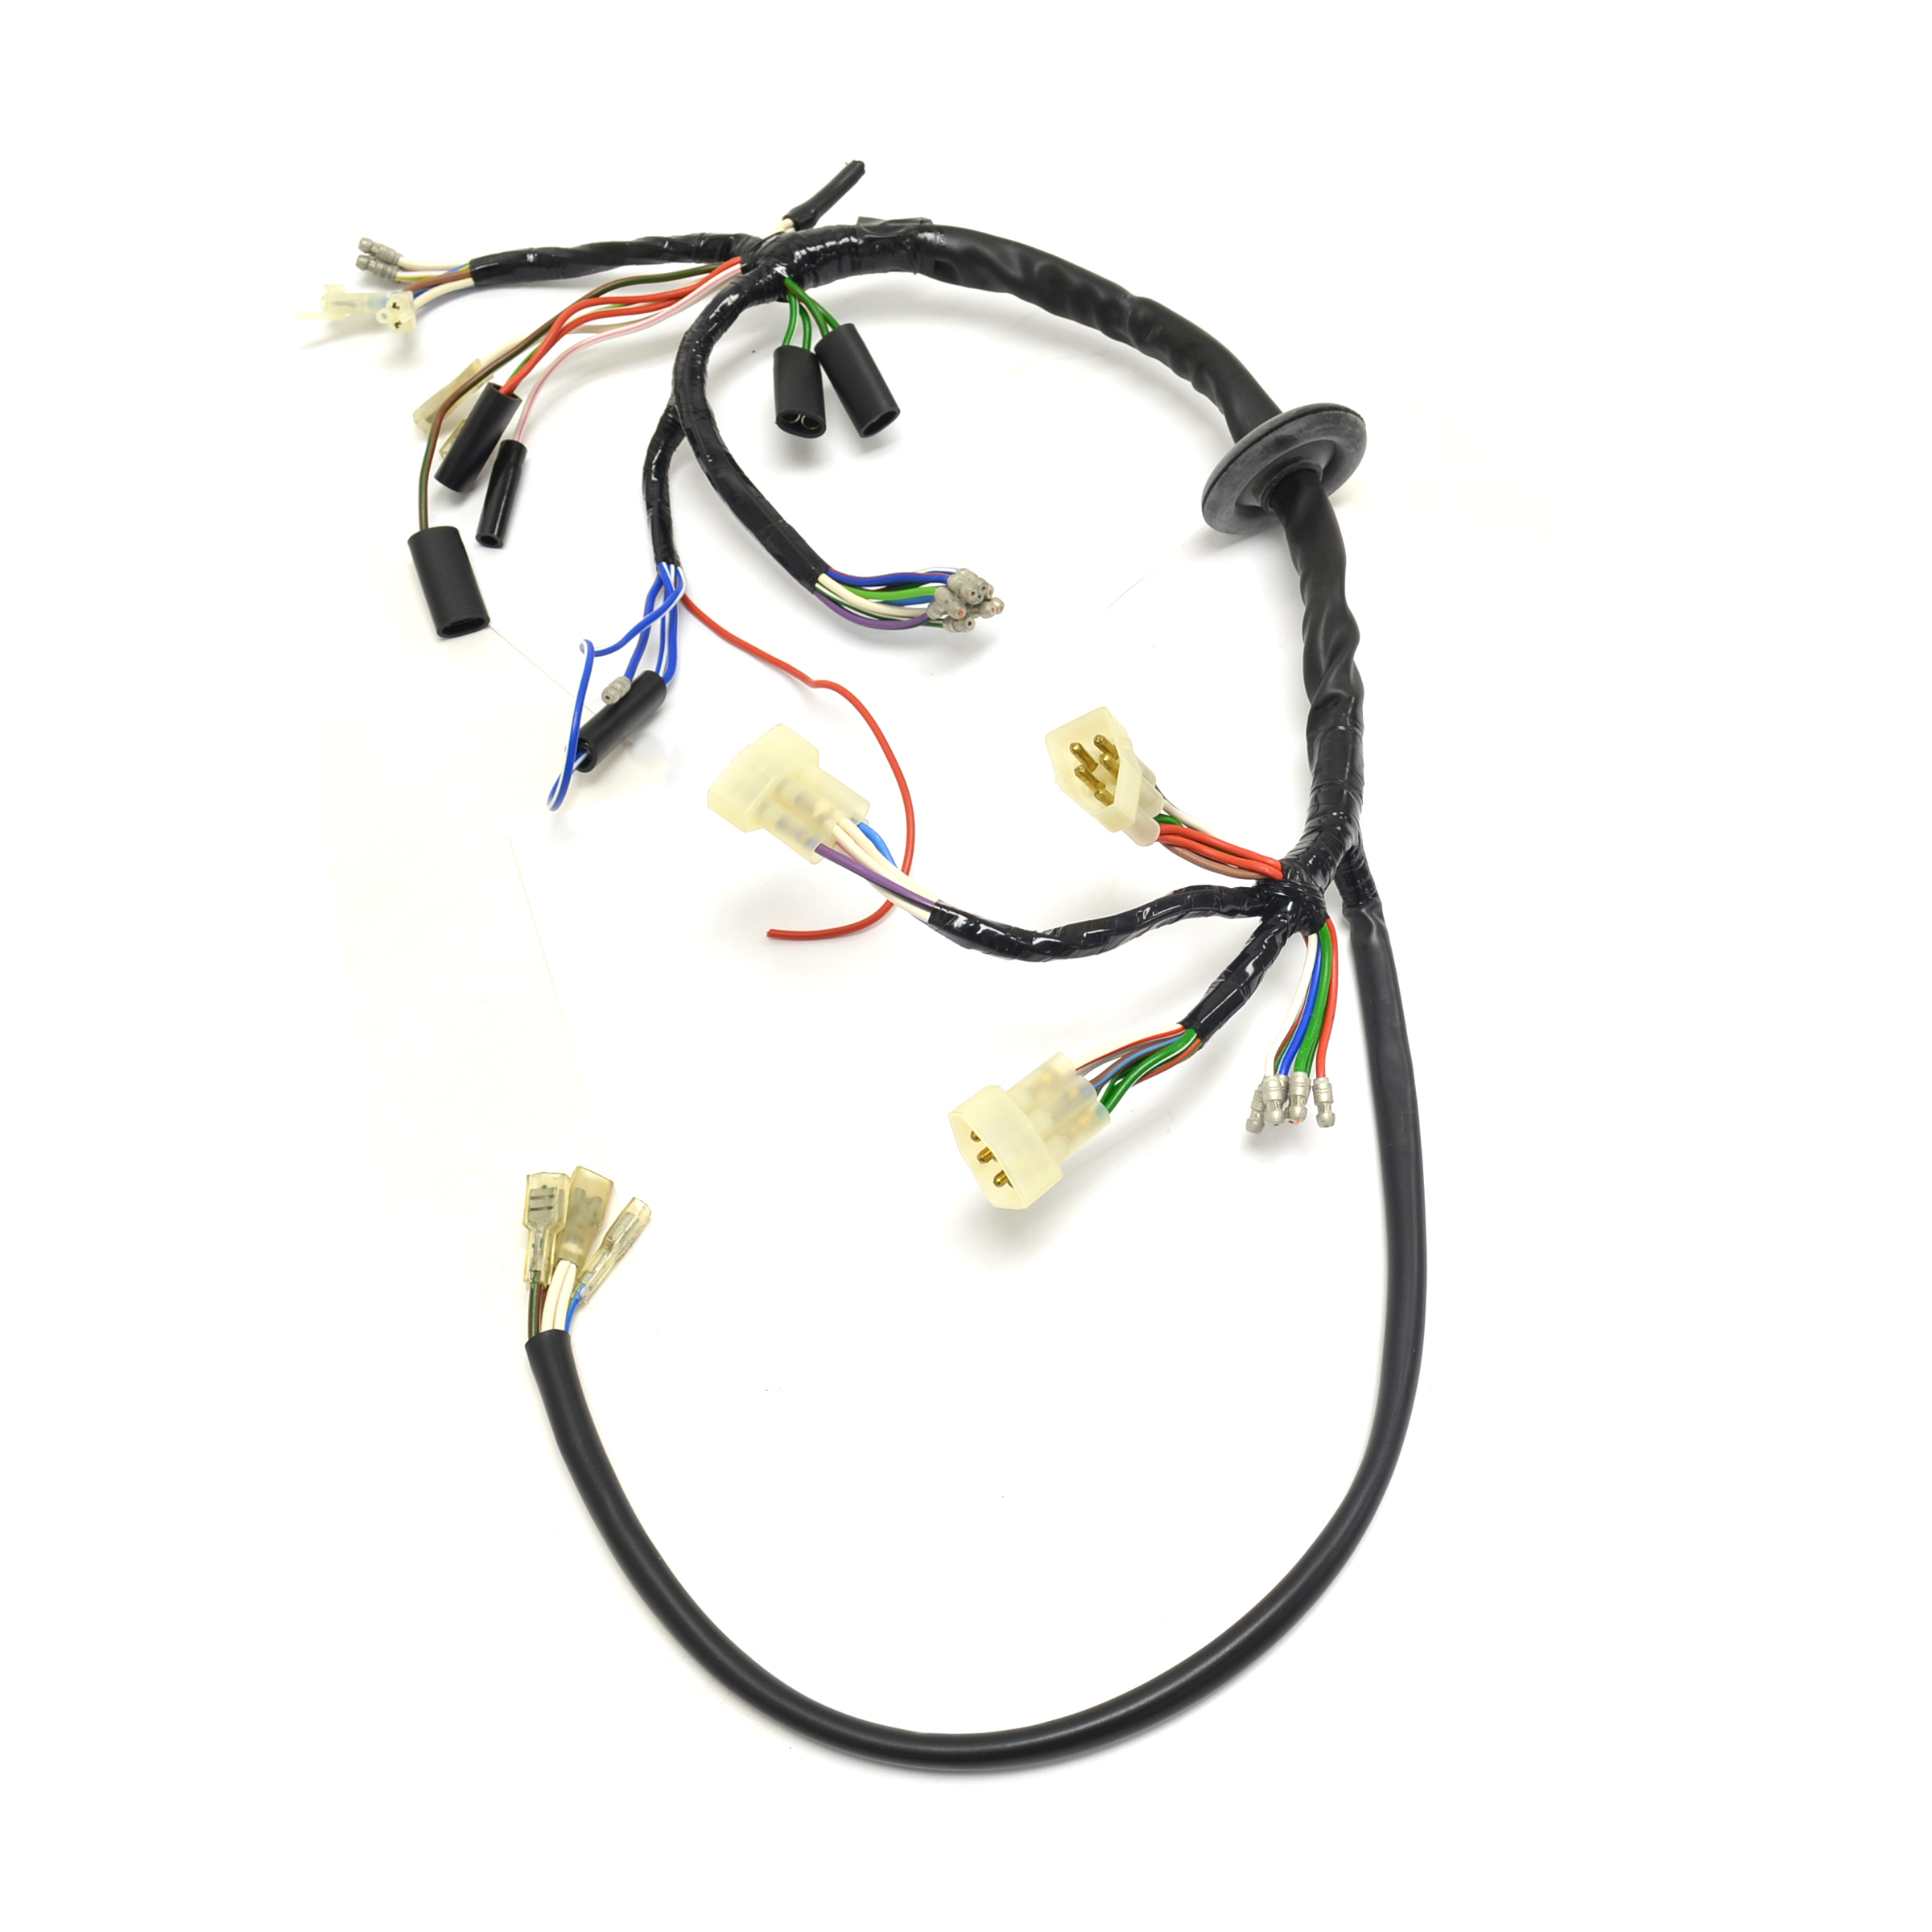 Norton Commando 1975-77 MKIII Headlight Wiring Harness